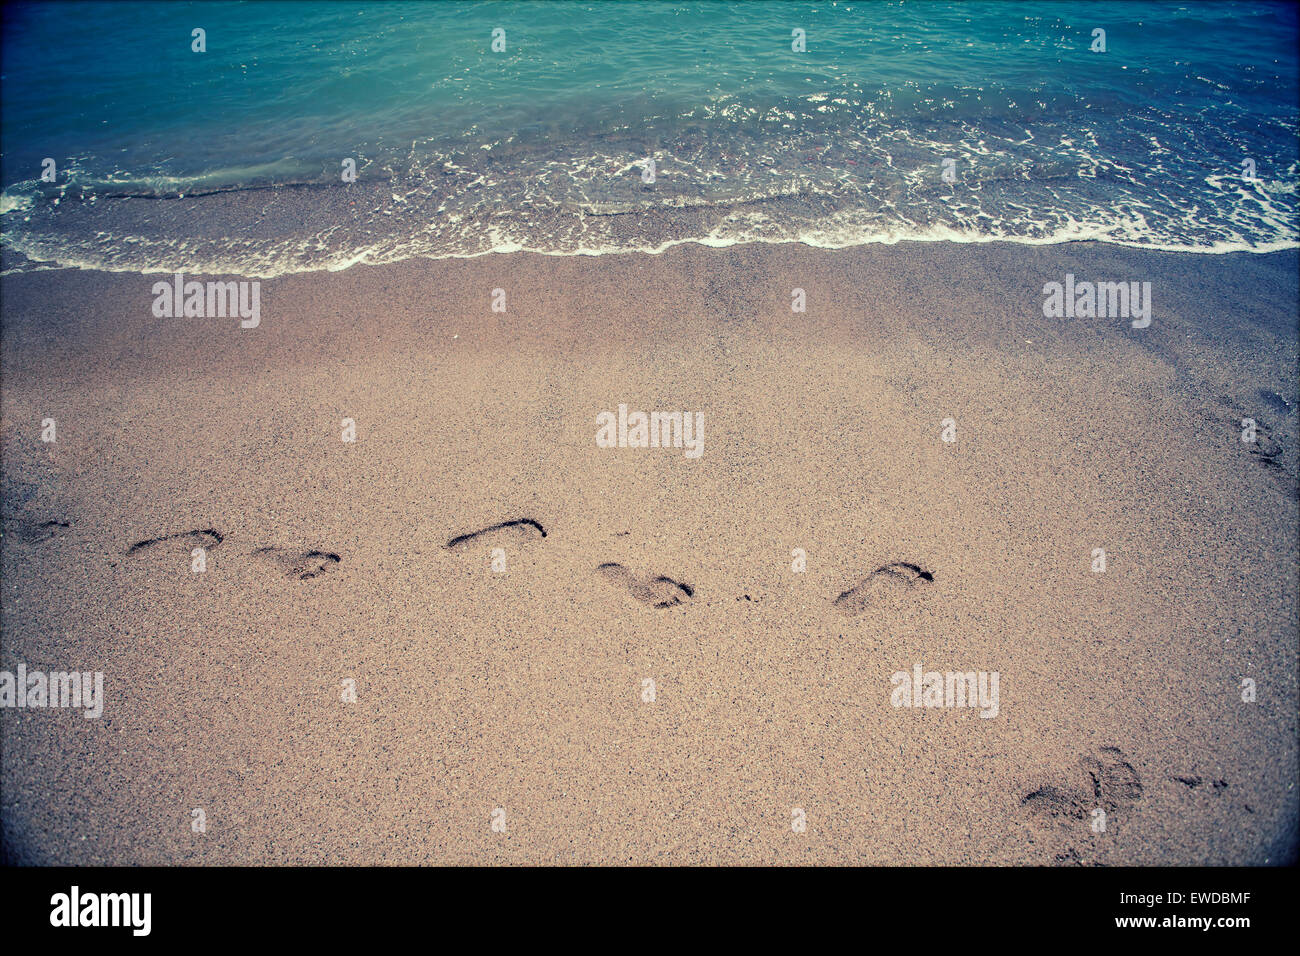 fd8660563 Footsteps in the sand at the beach - retro styled photo - Stock Image